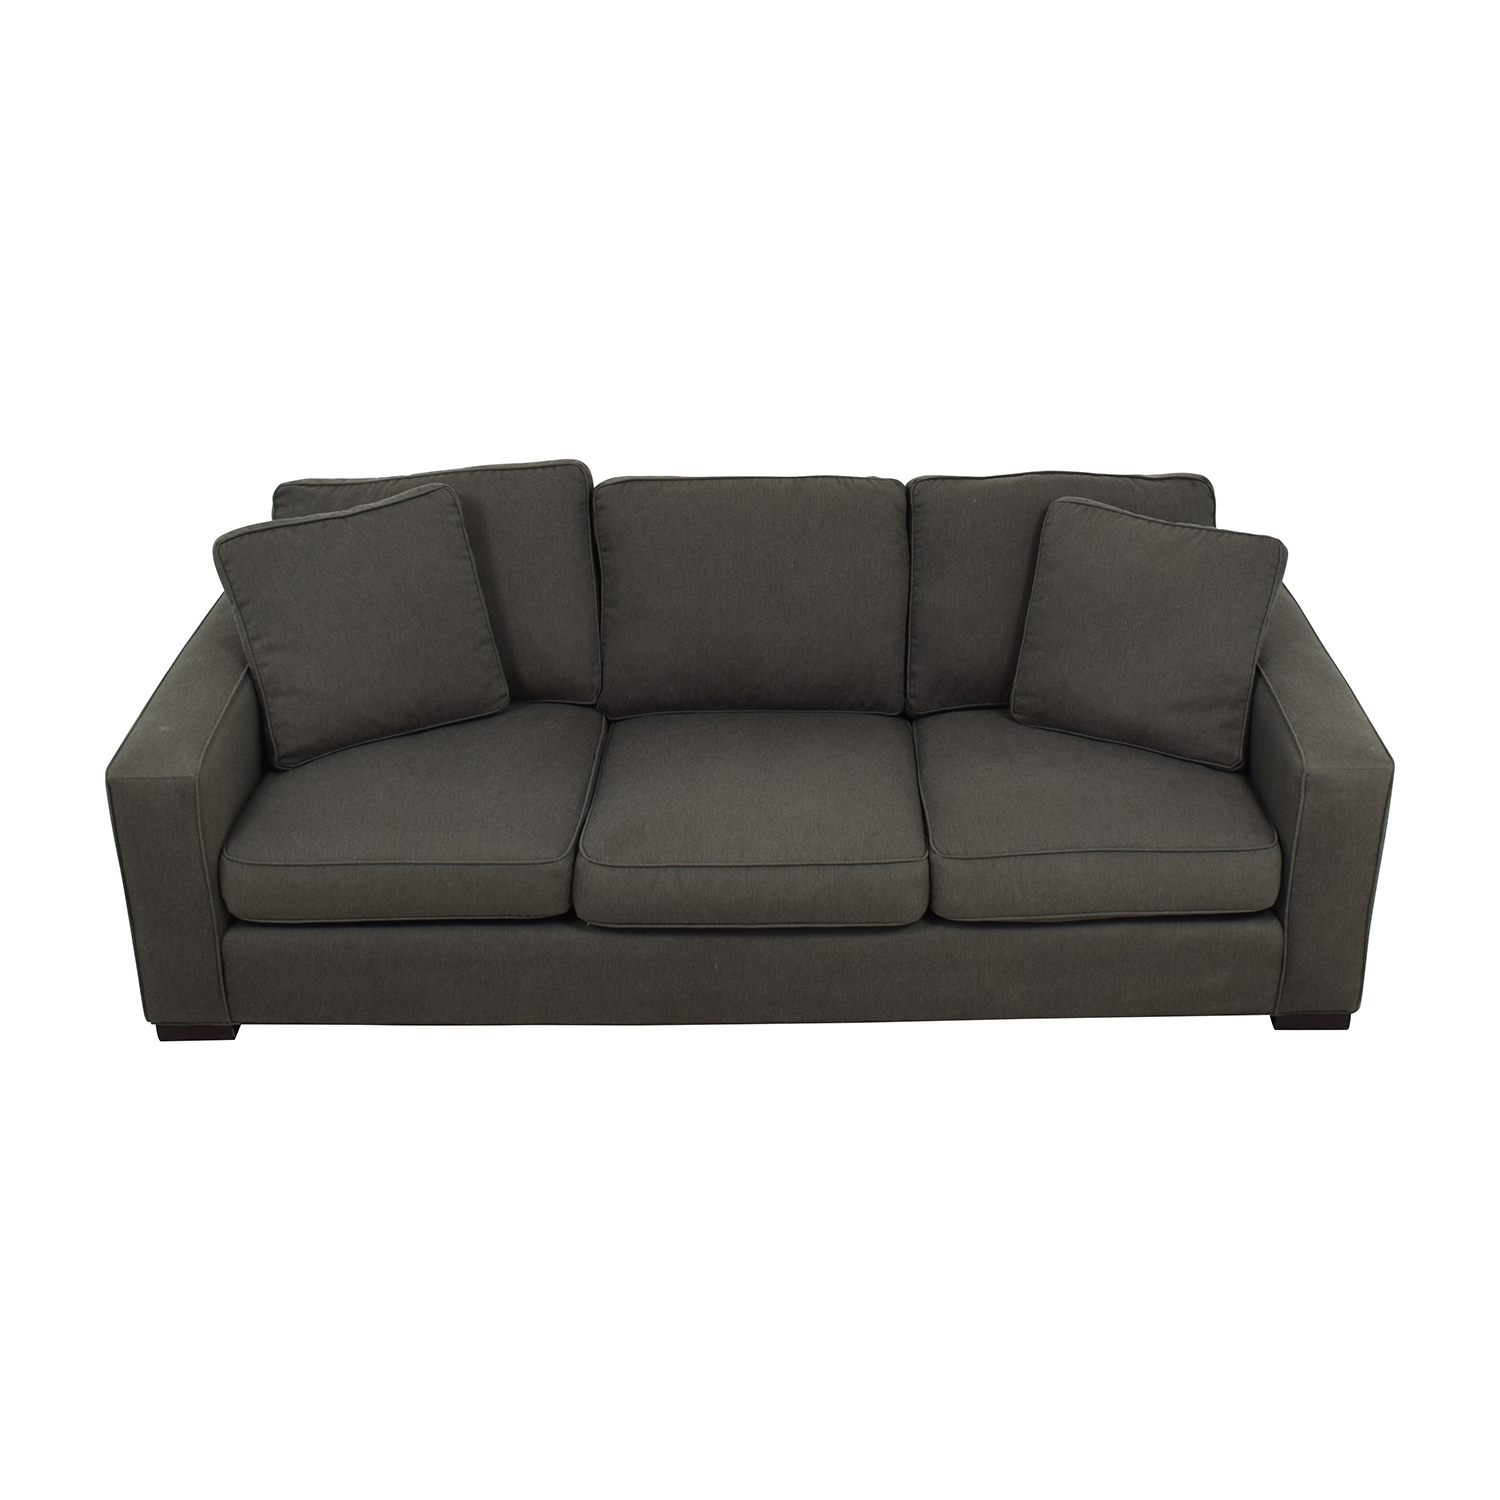 Shop metro sofa quality used furniture Room and board furniture quality